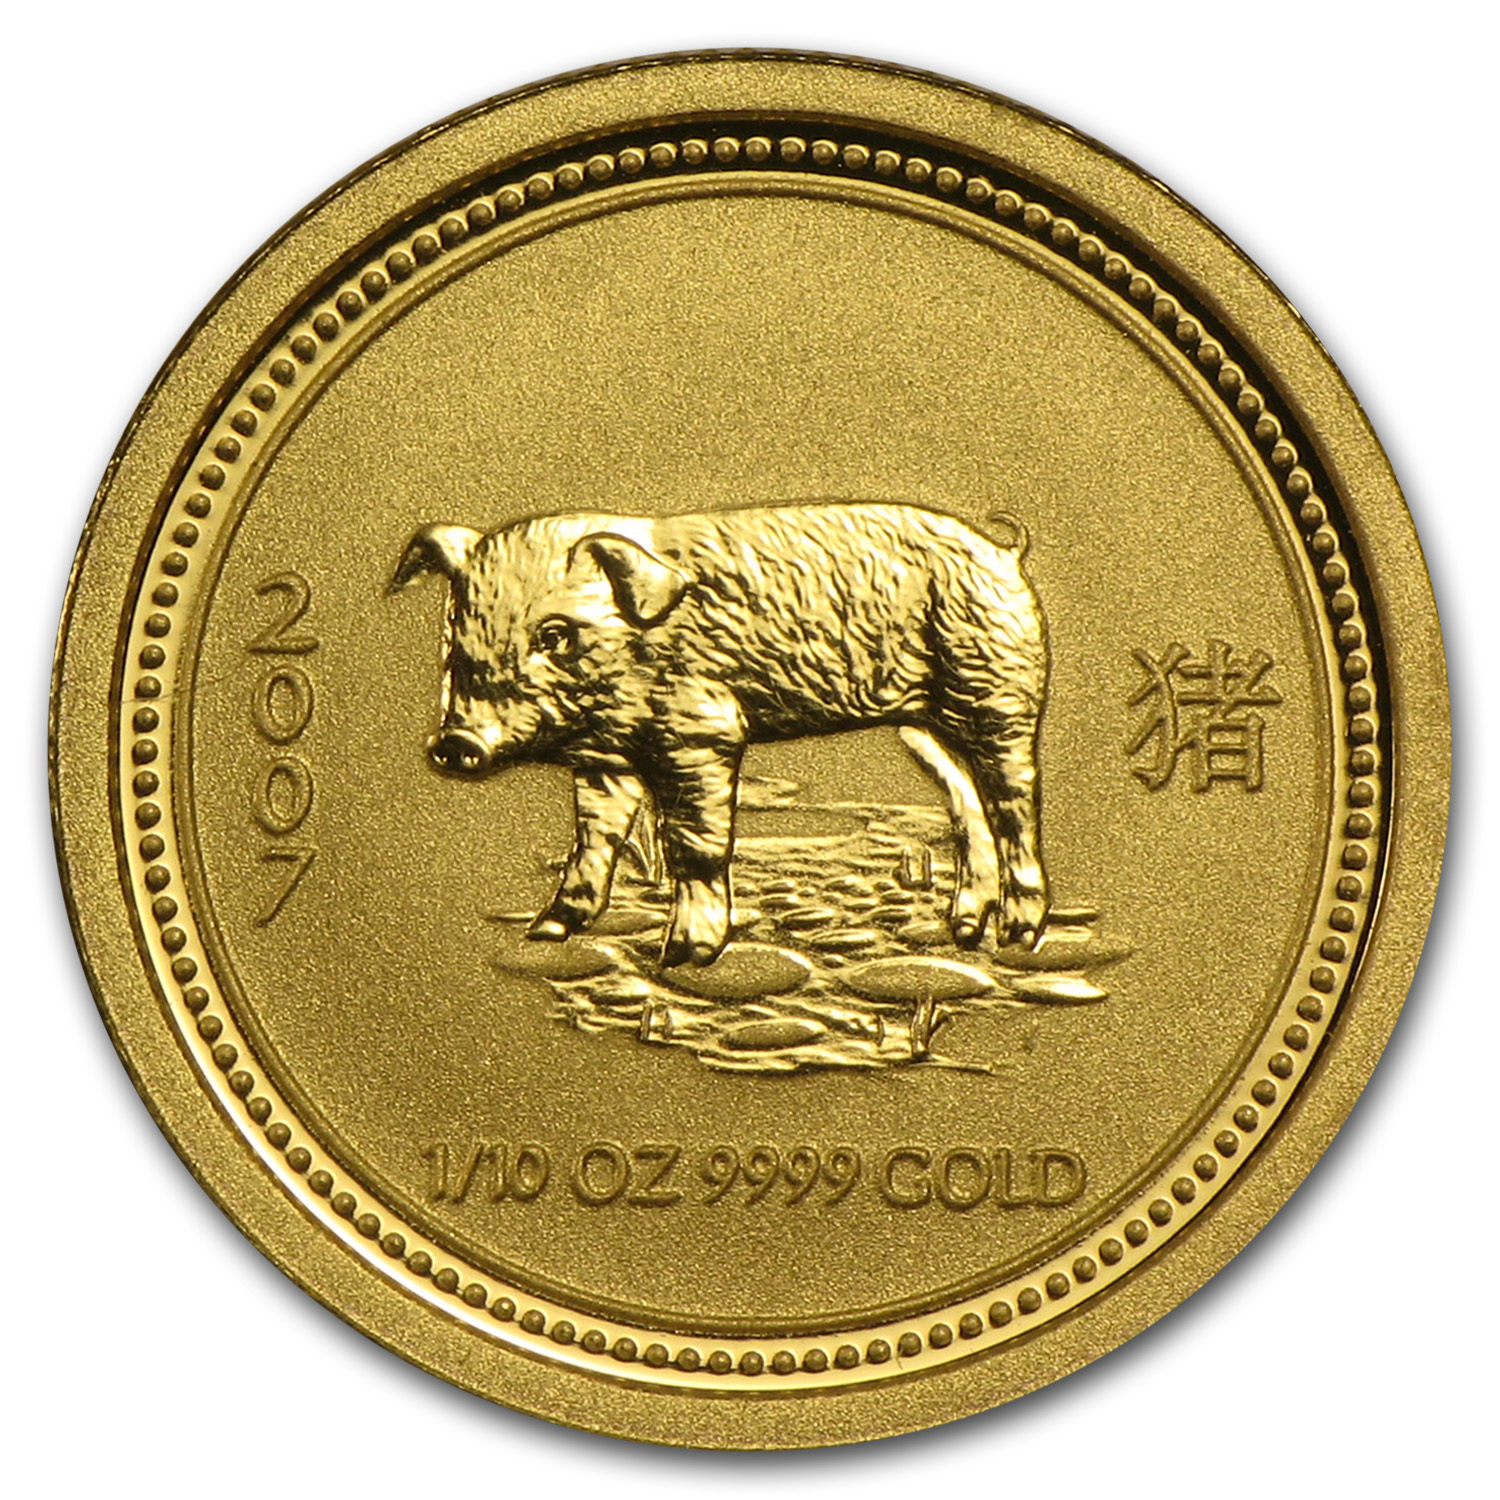 2007 1/10 oz Gold Lunar Year of the Pig BU (Series I)